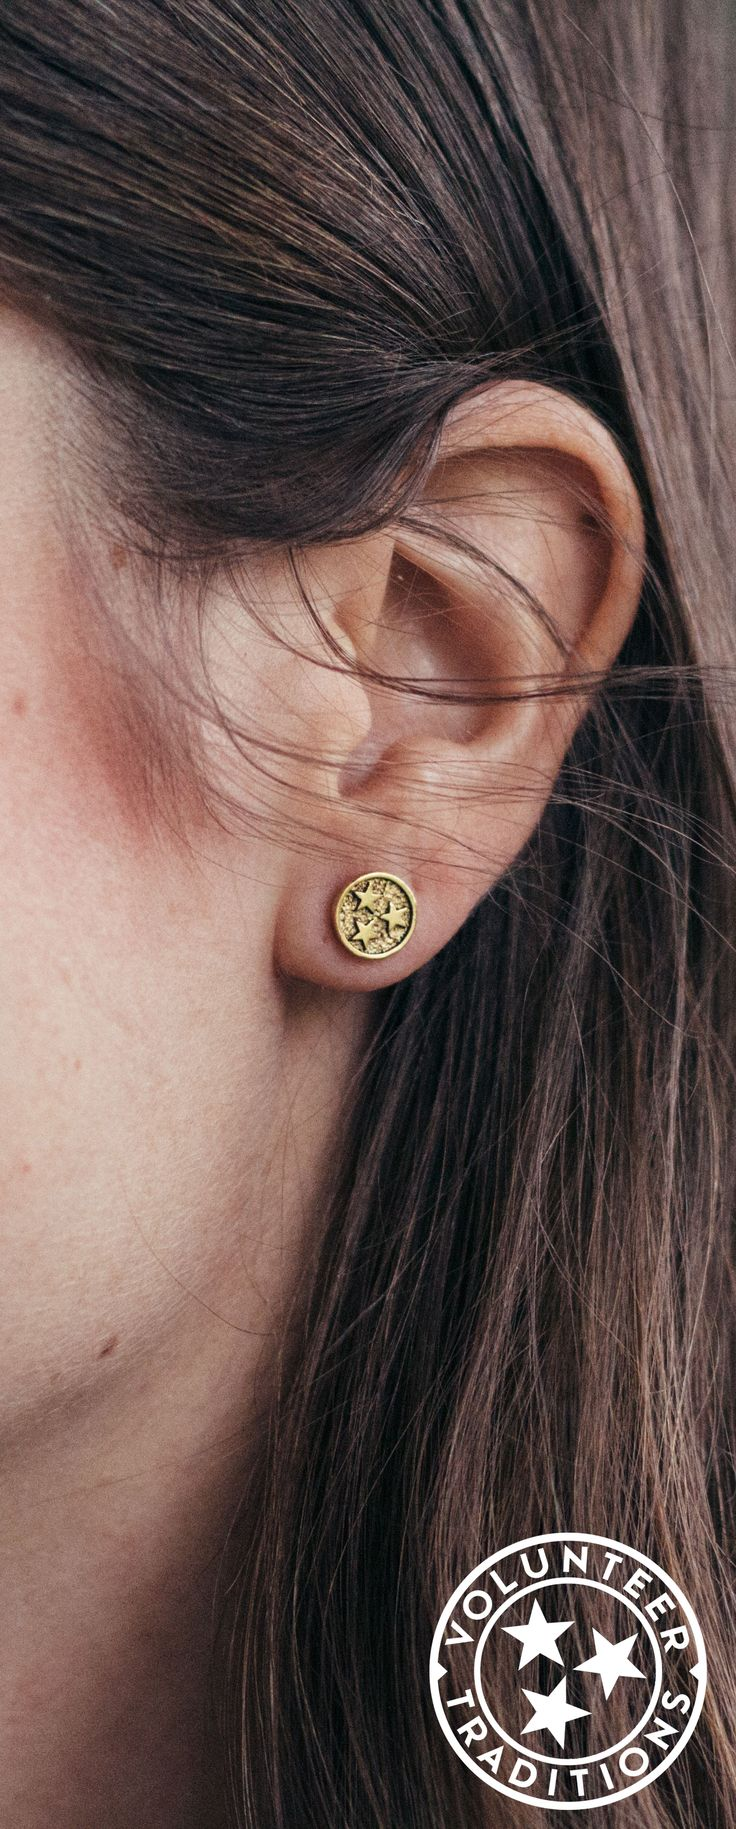 Piercing bump with pus   best earrings images on Pinterest  Ear studs Necklaces and Curls